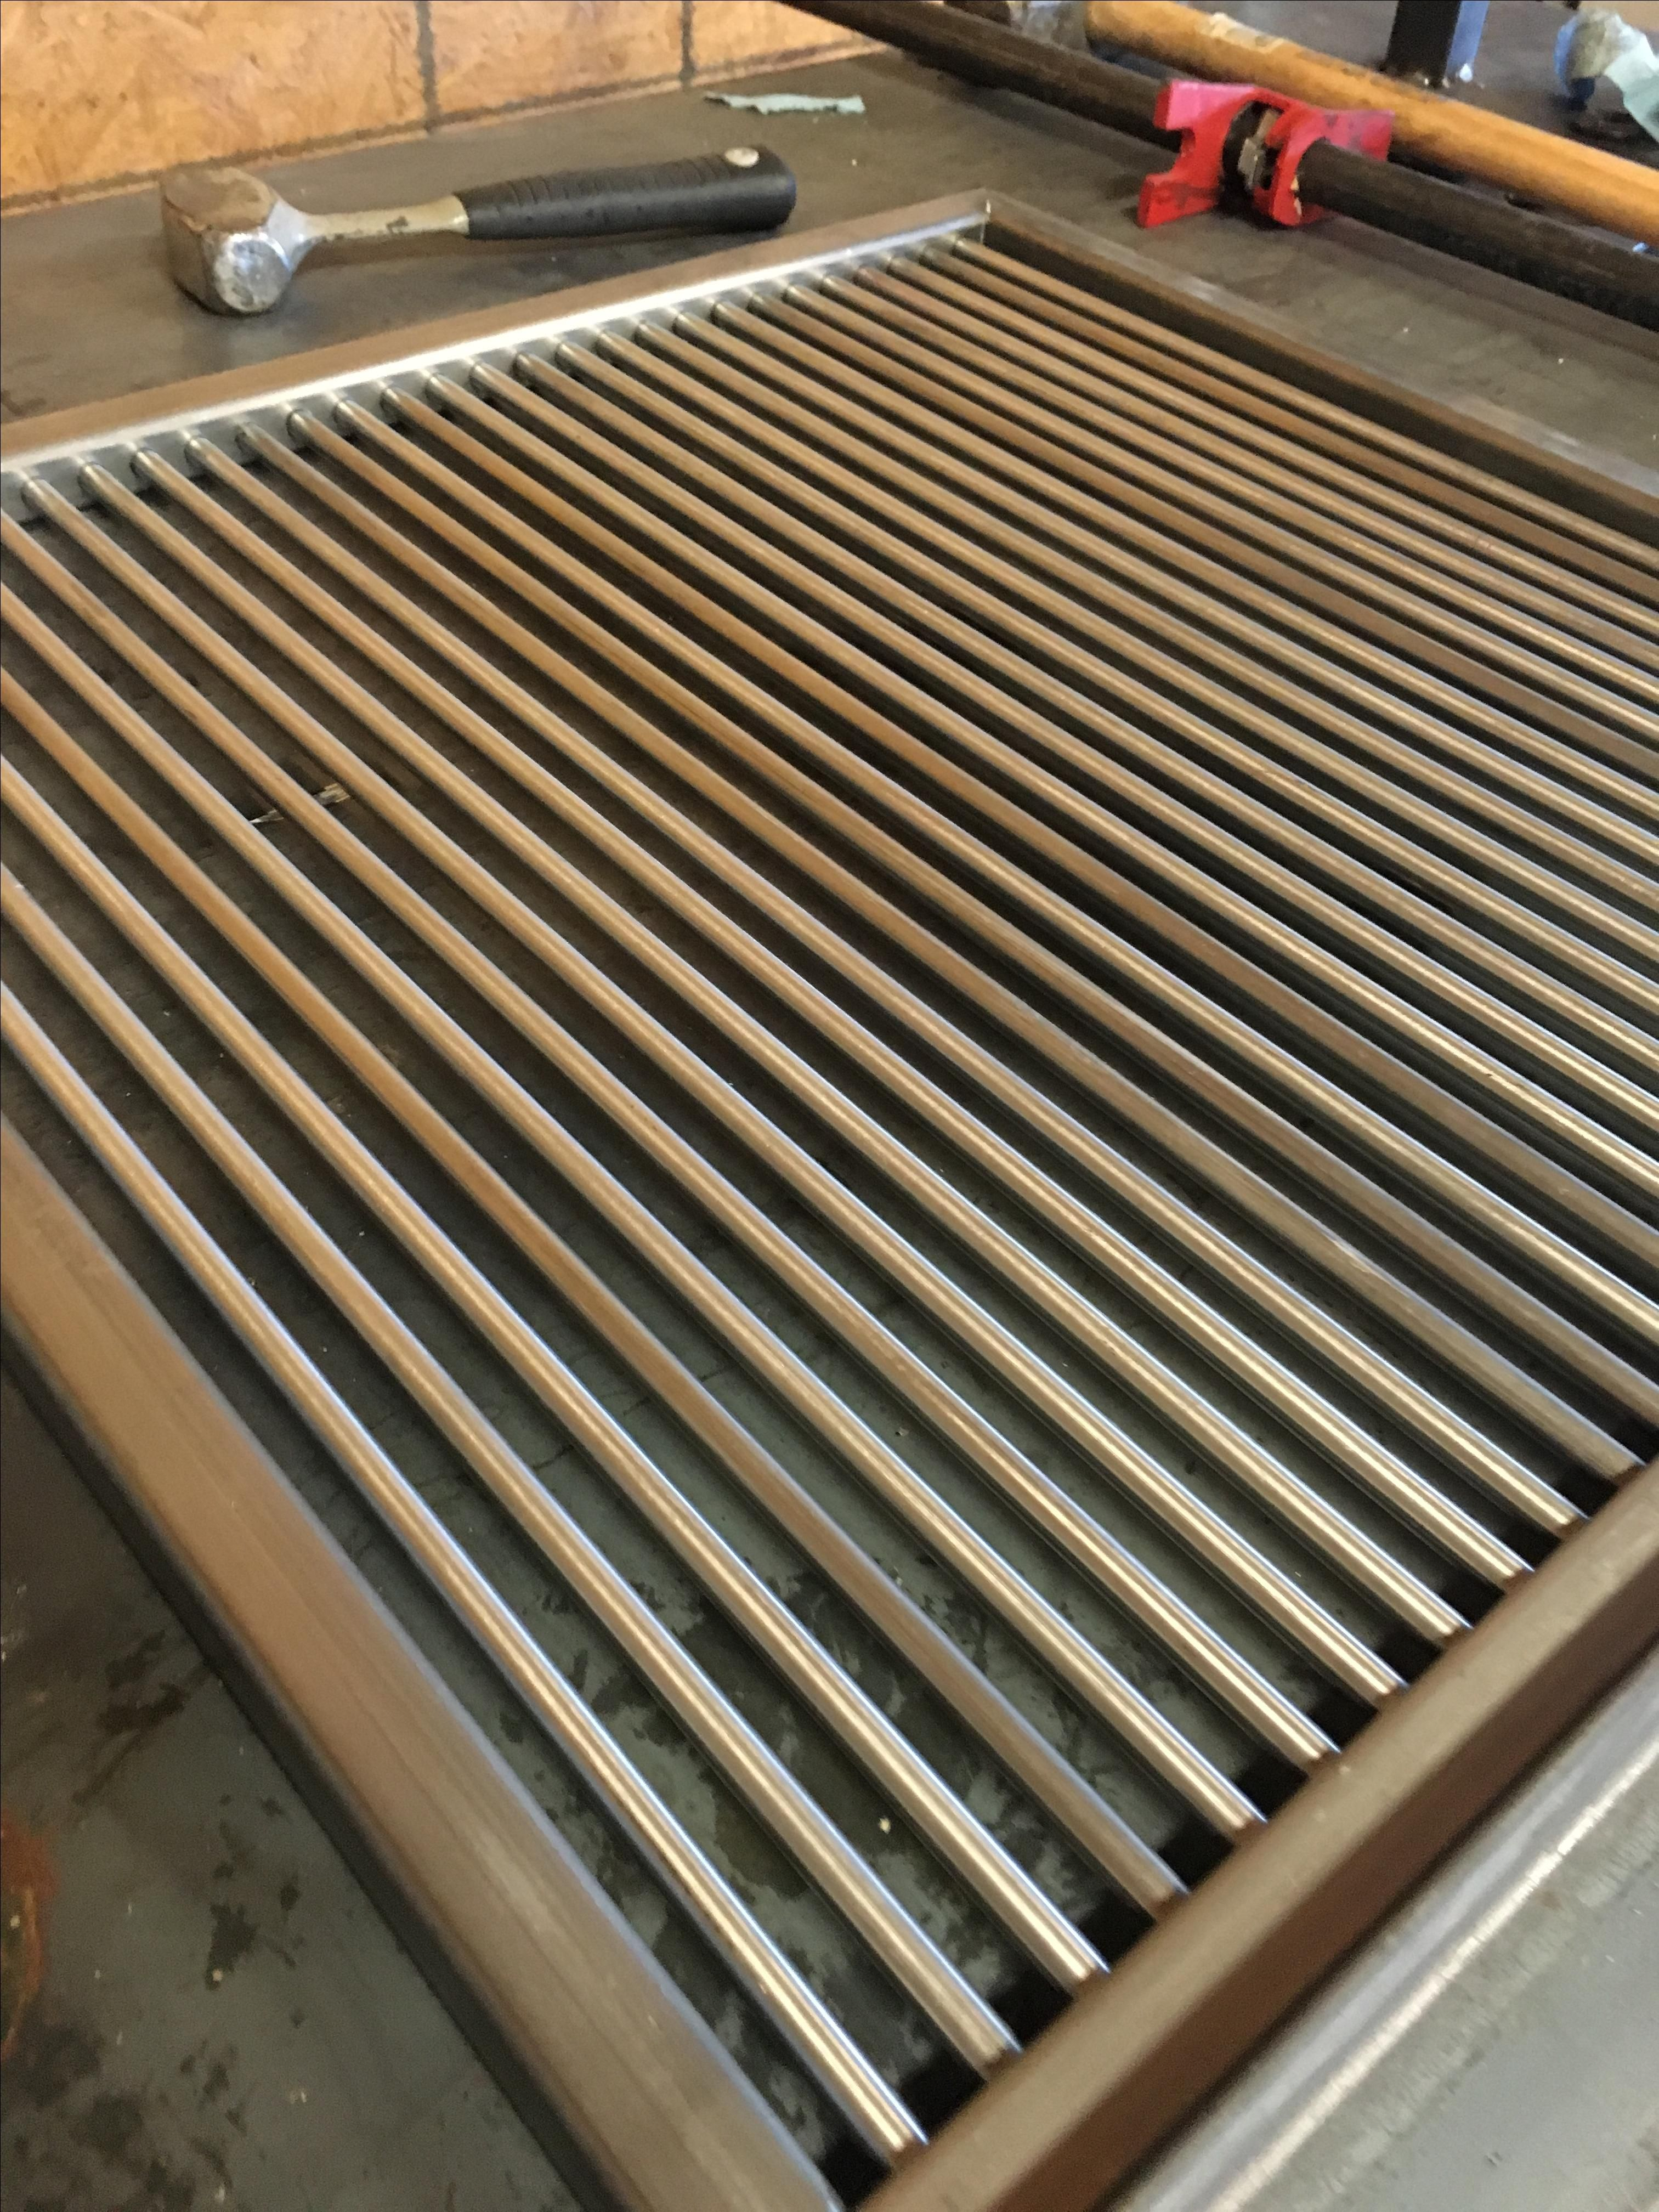 Hand Crafted Grill Grates by Freelance Customs | CustomMade com